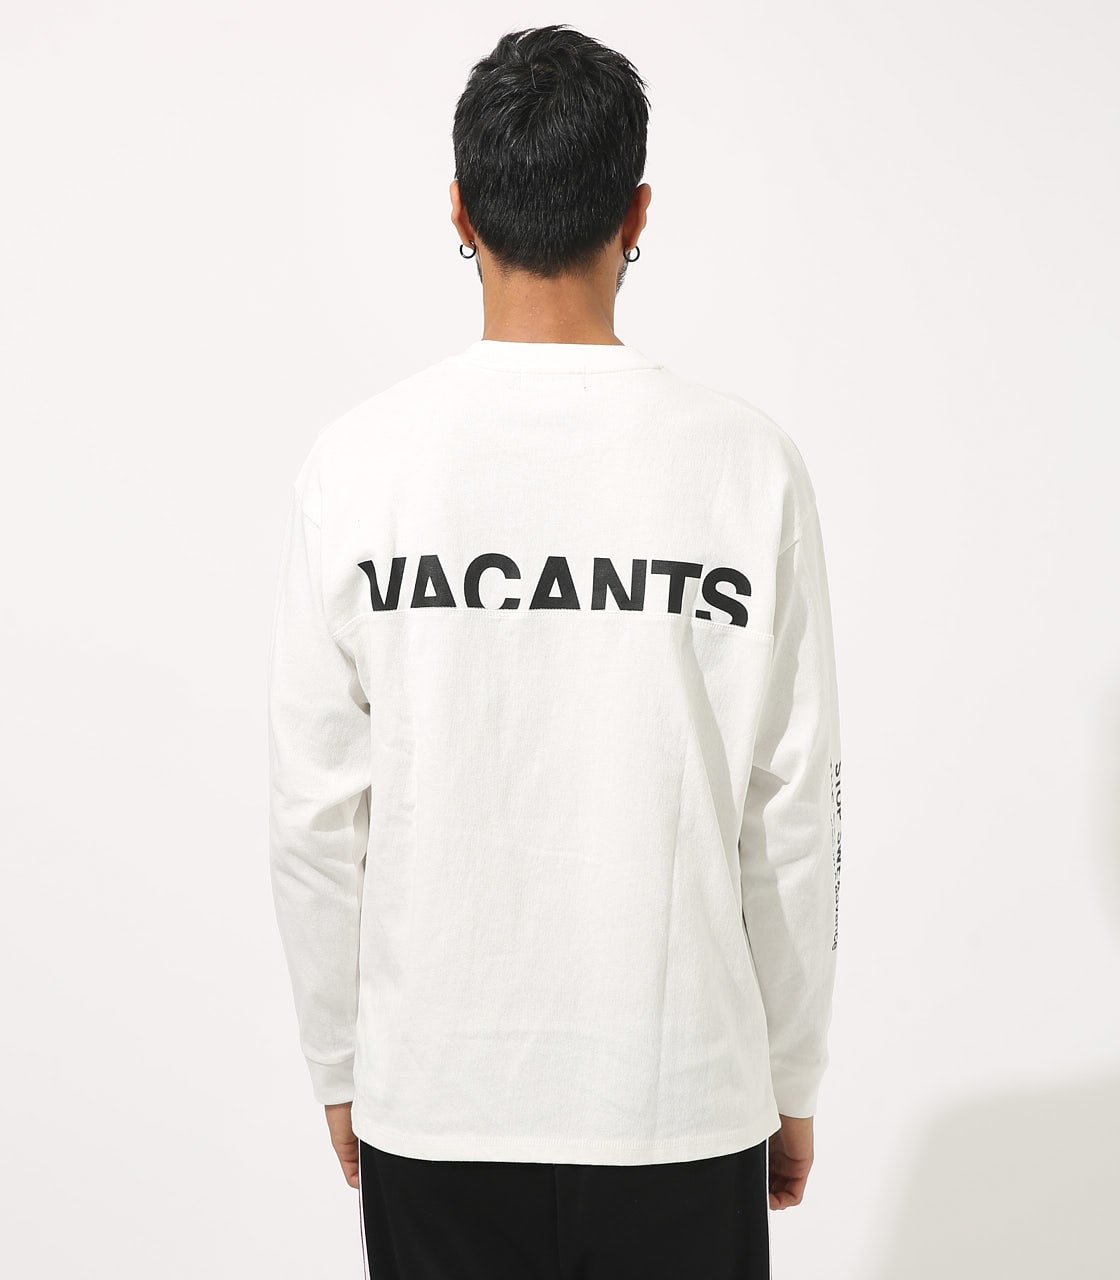 【AZUL BY MOUSSY】VACANTS BIG LONG SLEEVE 詳細画像 WHT 7